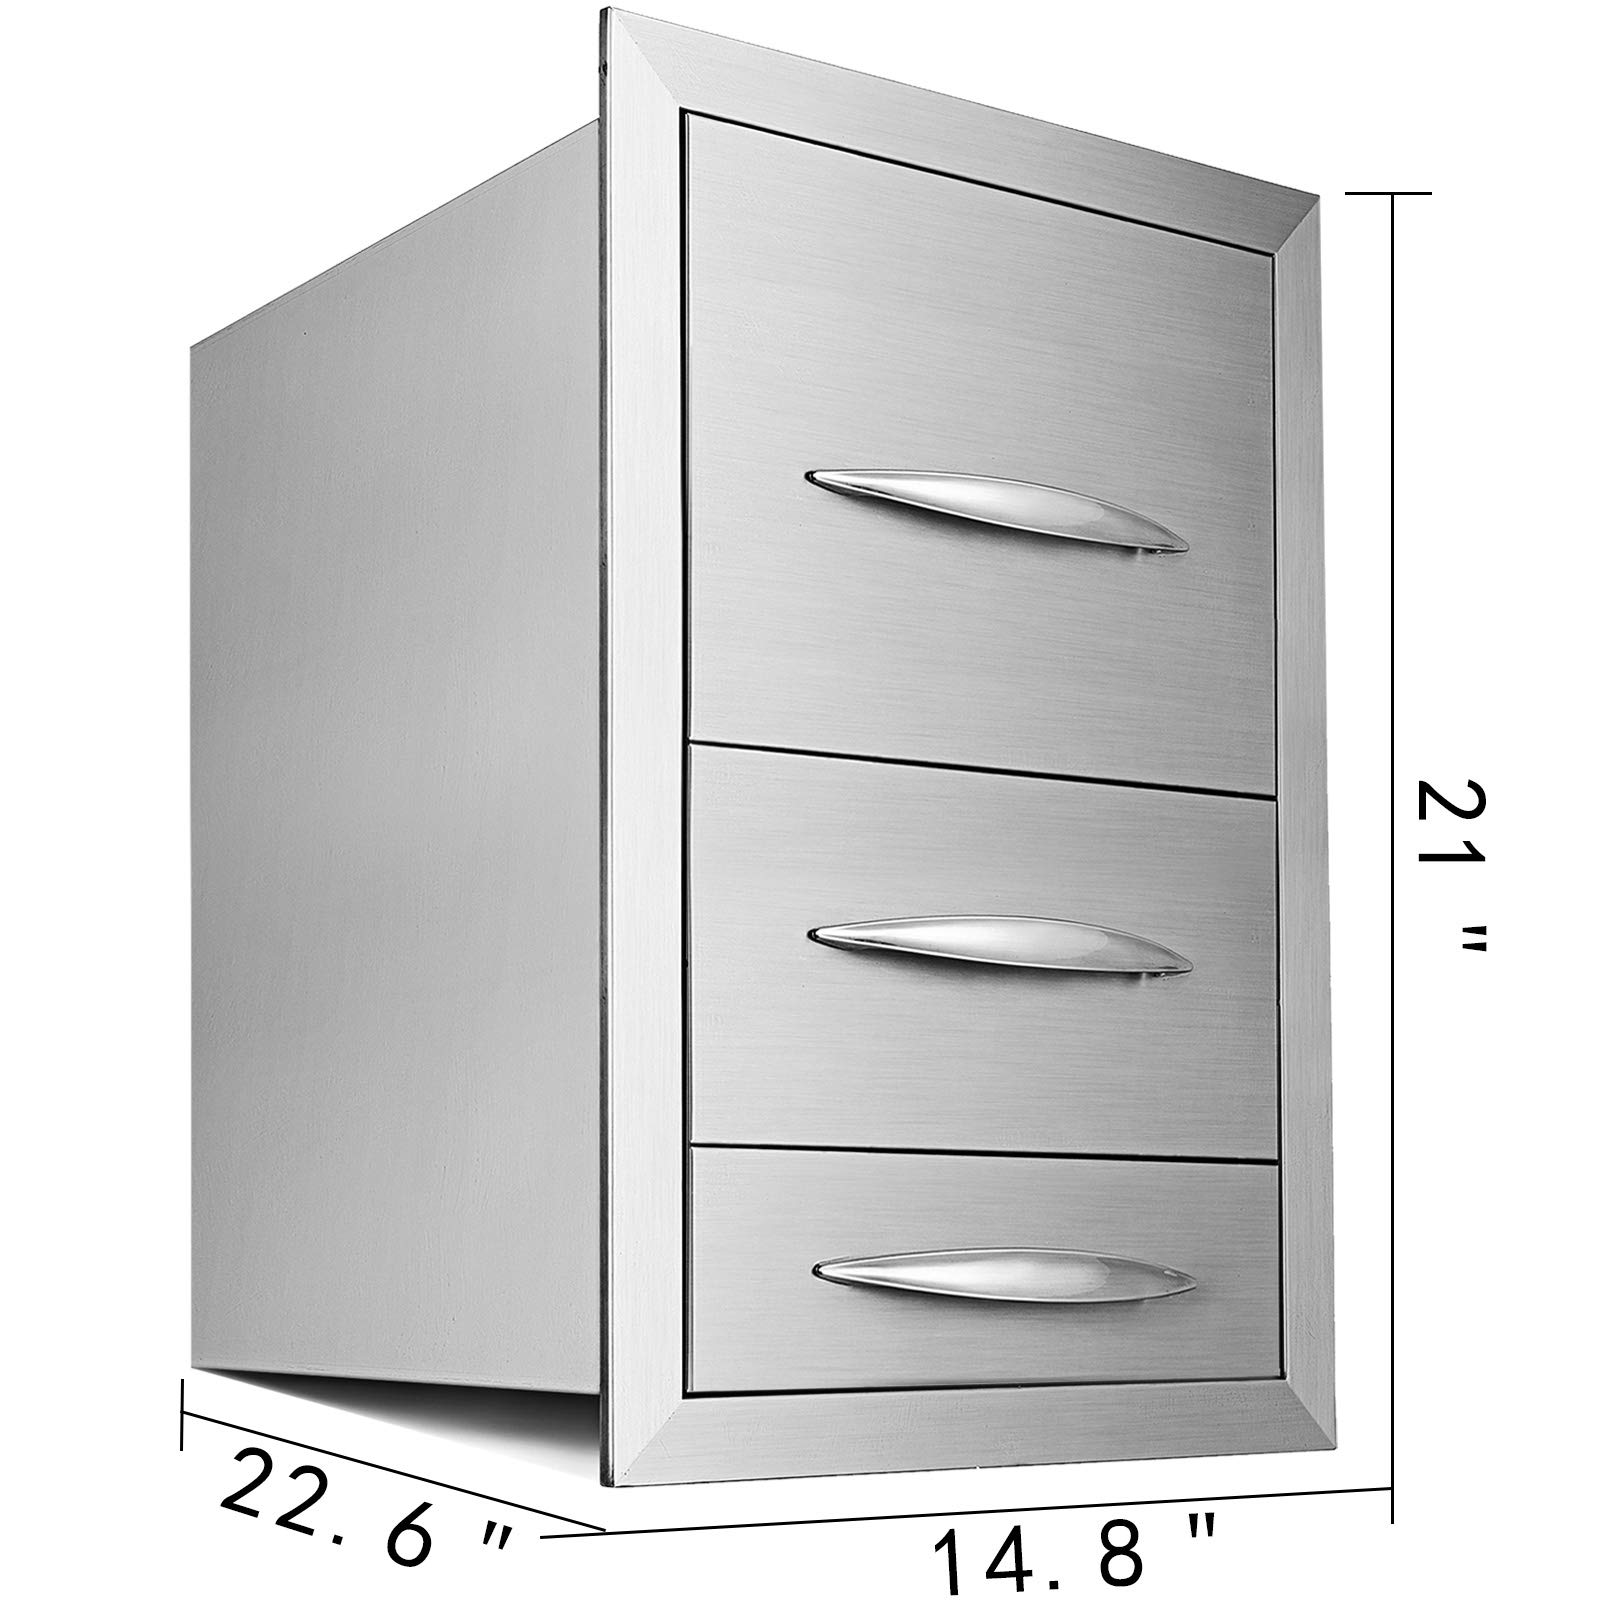 Mophorn 15''x21'' Outdoor Kitchen Drawer Stainless Steel Triple Access Drawer BBQ Storage with Chrome Handle Flush Mount Sliver by Mophorn (Image #2)